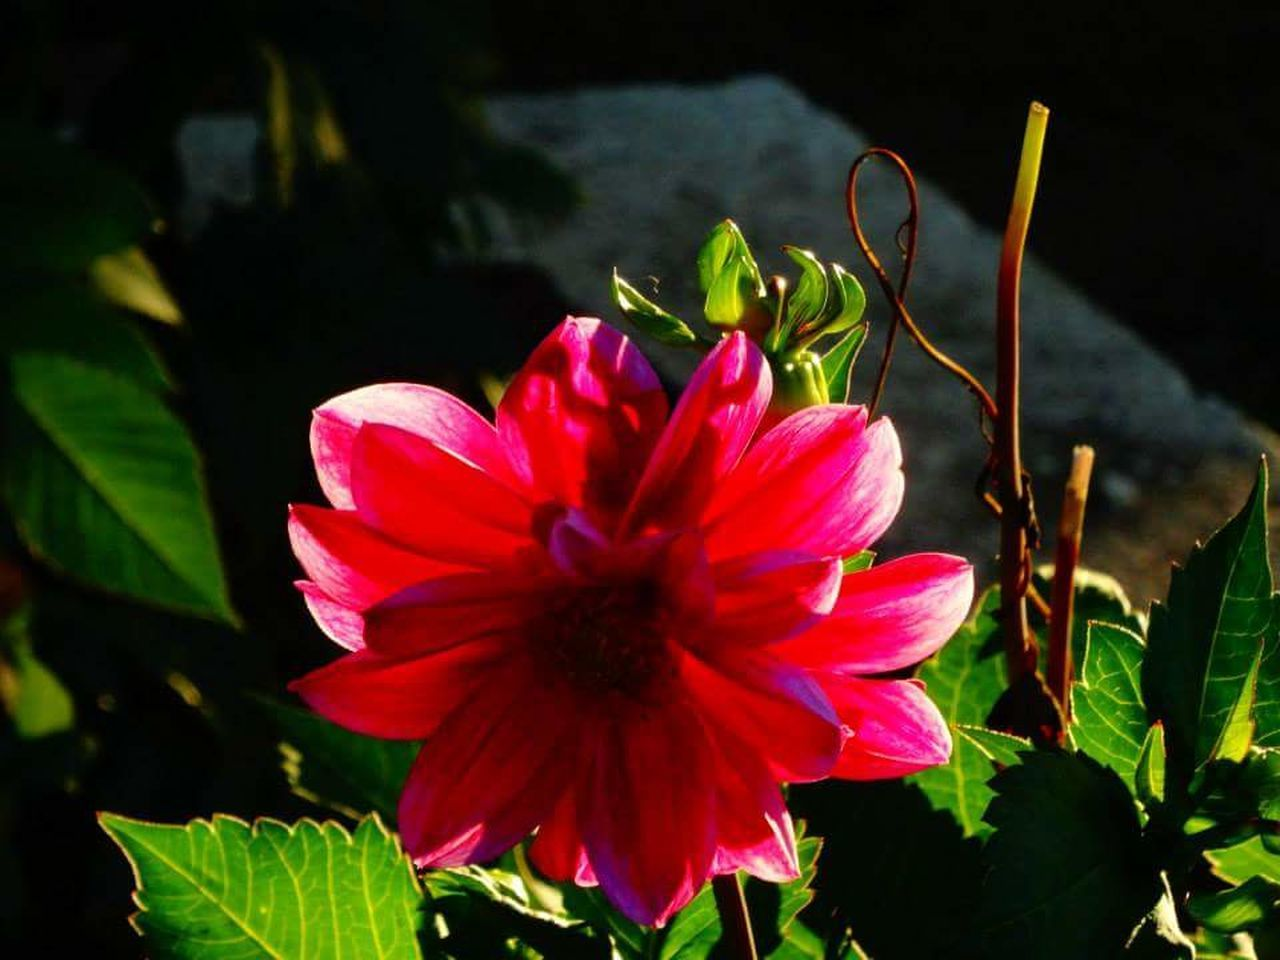 flower, growth, petal, plant, fragility, beauty in nature, flower head, freshness, nature, no people, close-up, red, blooming, outdoors, pink color, day, leaf